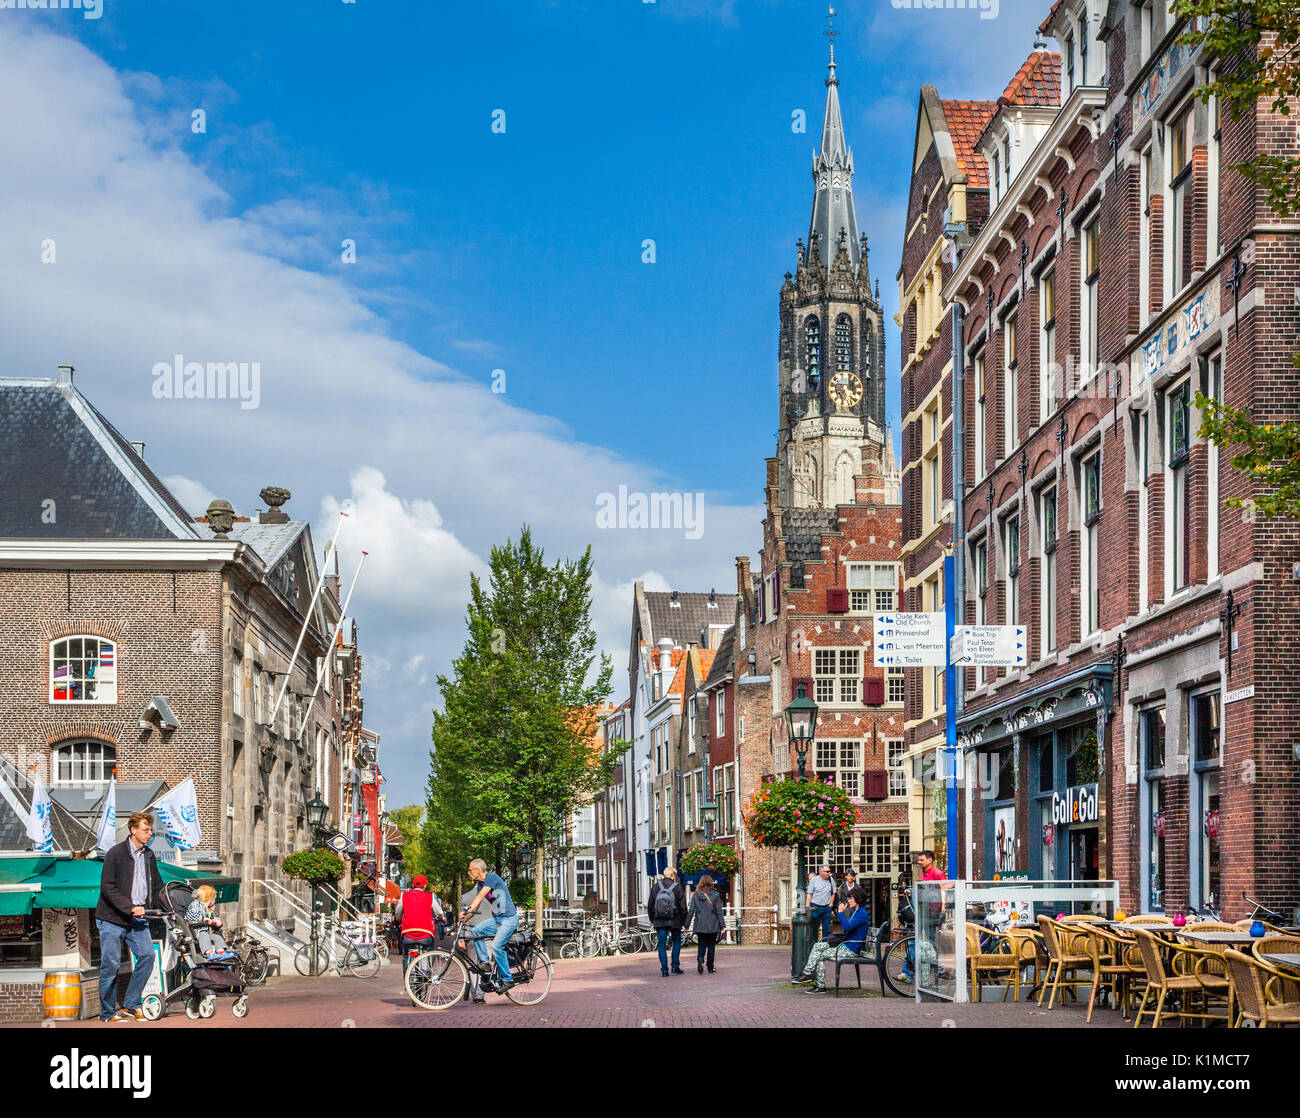 Netherlands, South Holland, Delft, view Camaretten, a square off the Market square which used to be a fish market, with the old Vleeshal (meat hall),  - Stock Image